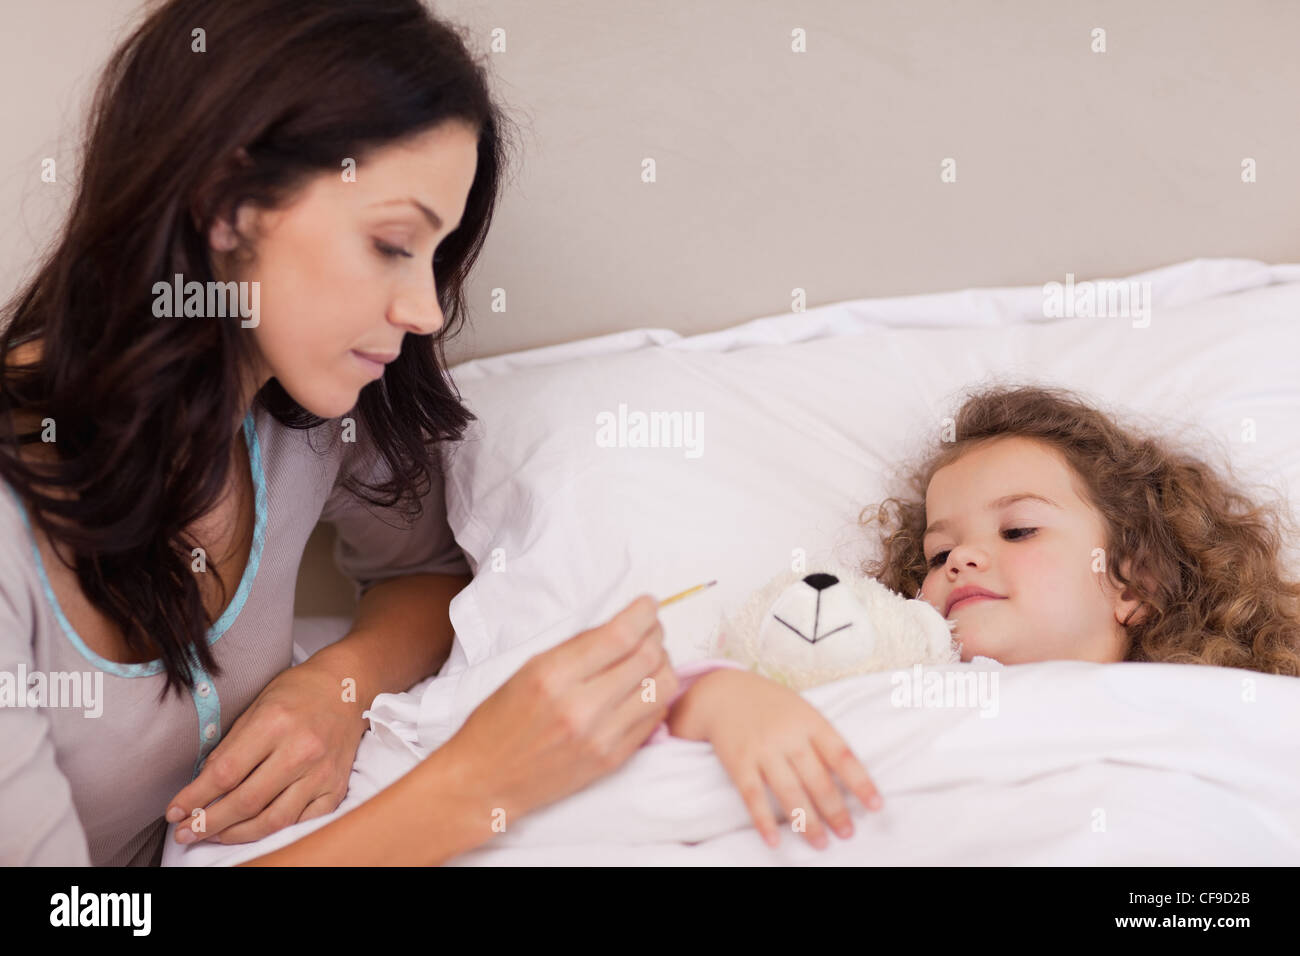 Mother taking her daughters temperature - Stock Image